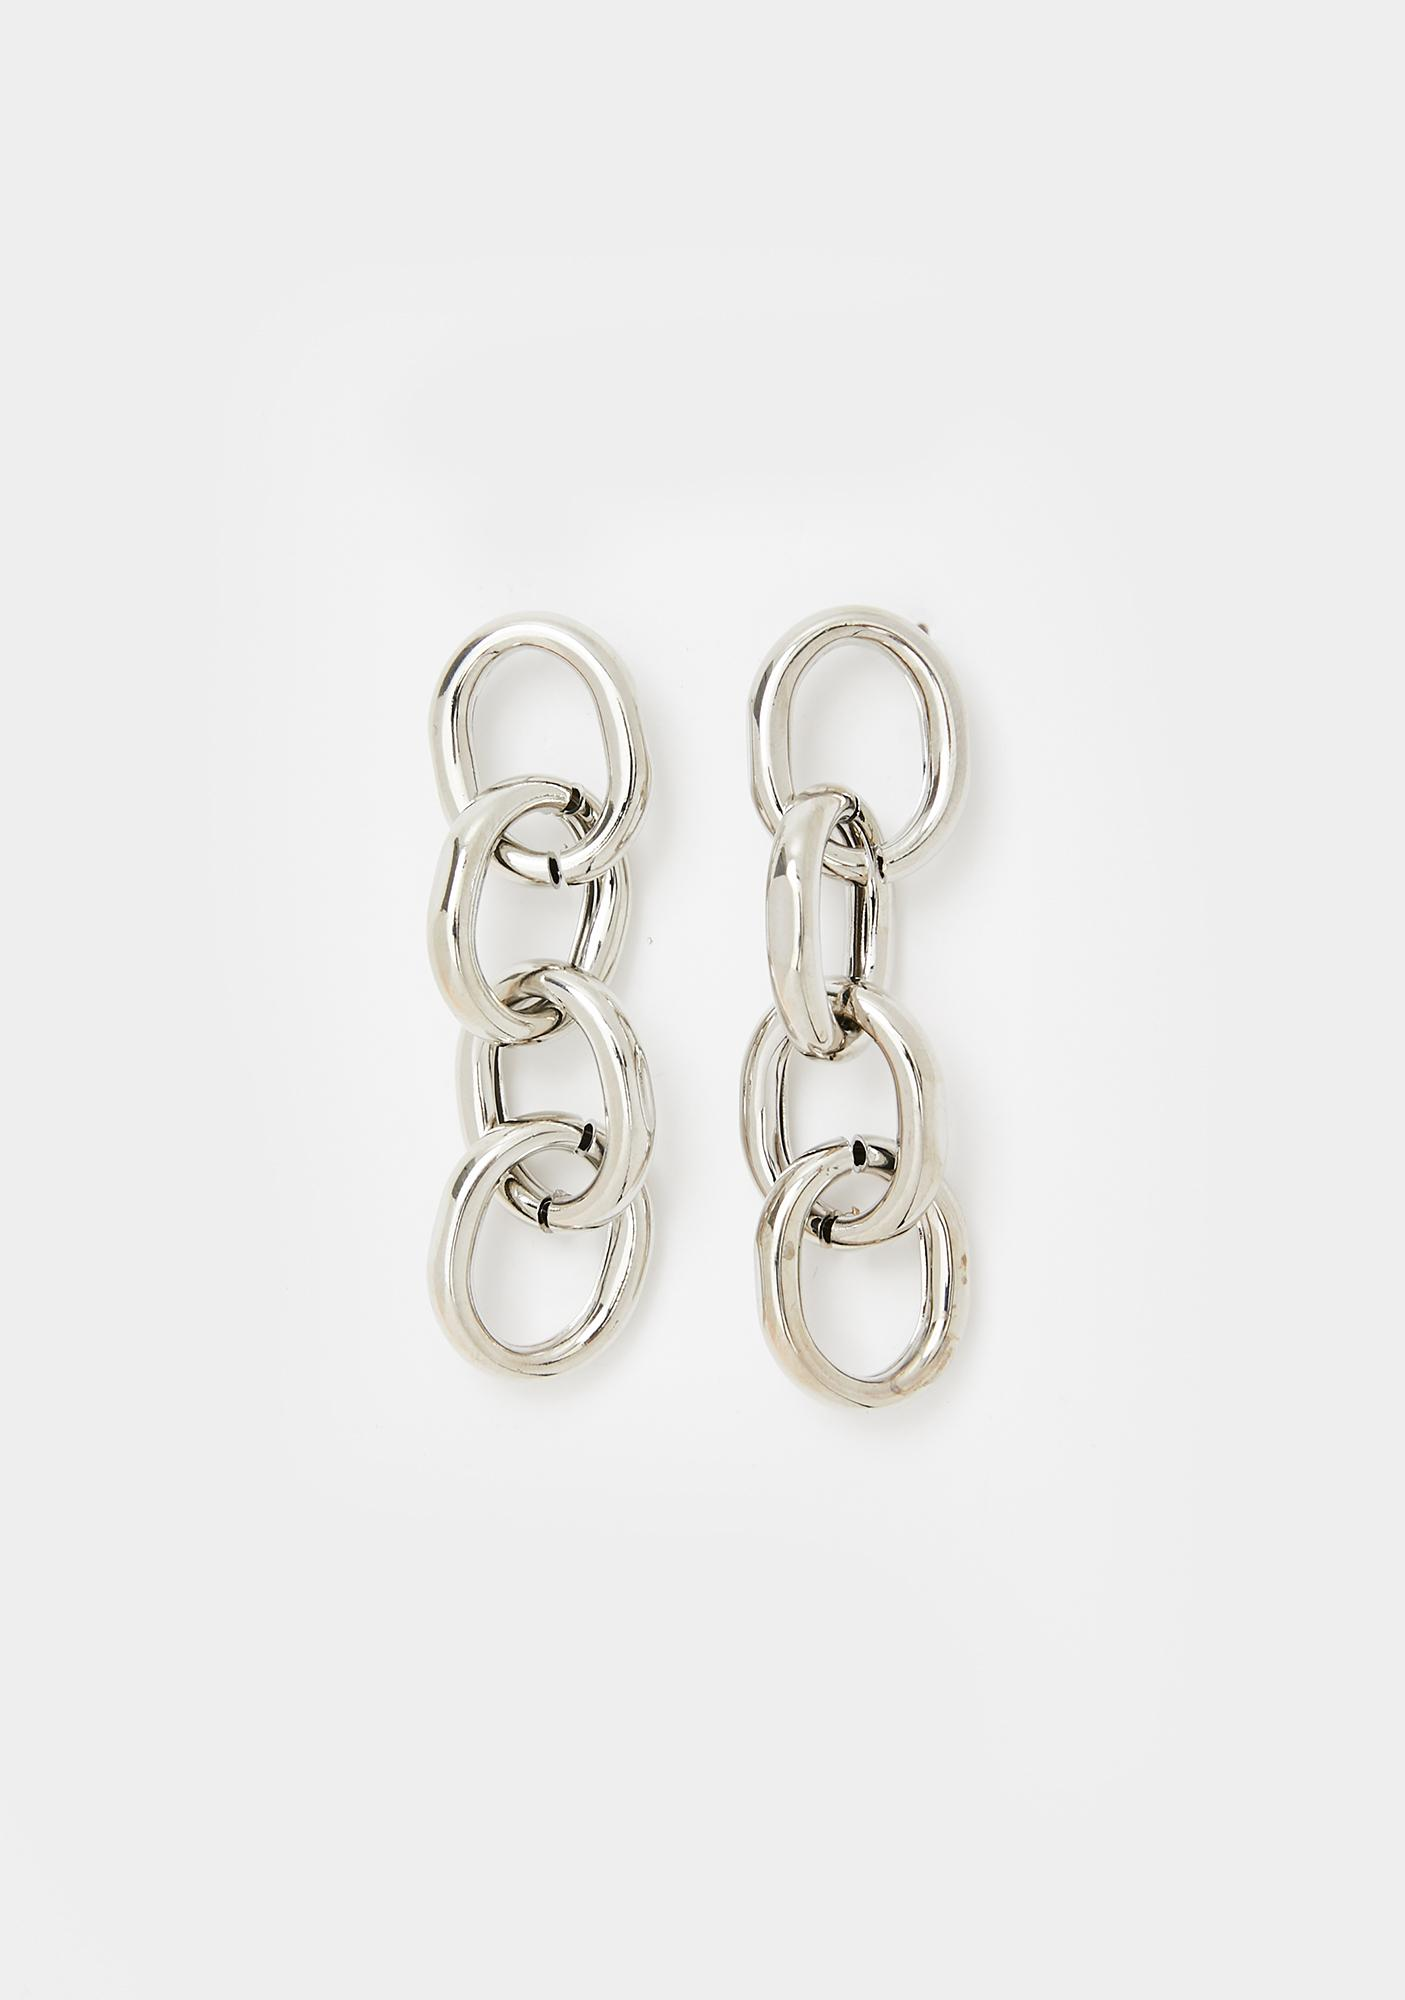 Subtle Attraction Chain Earrings